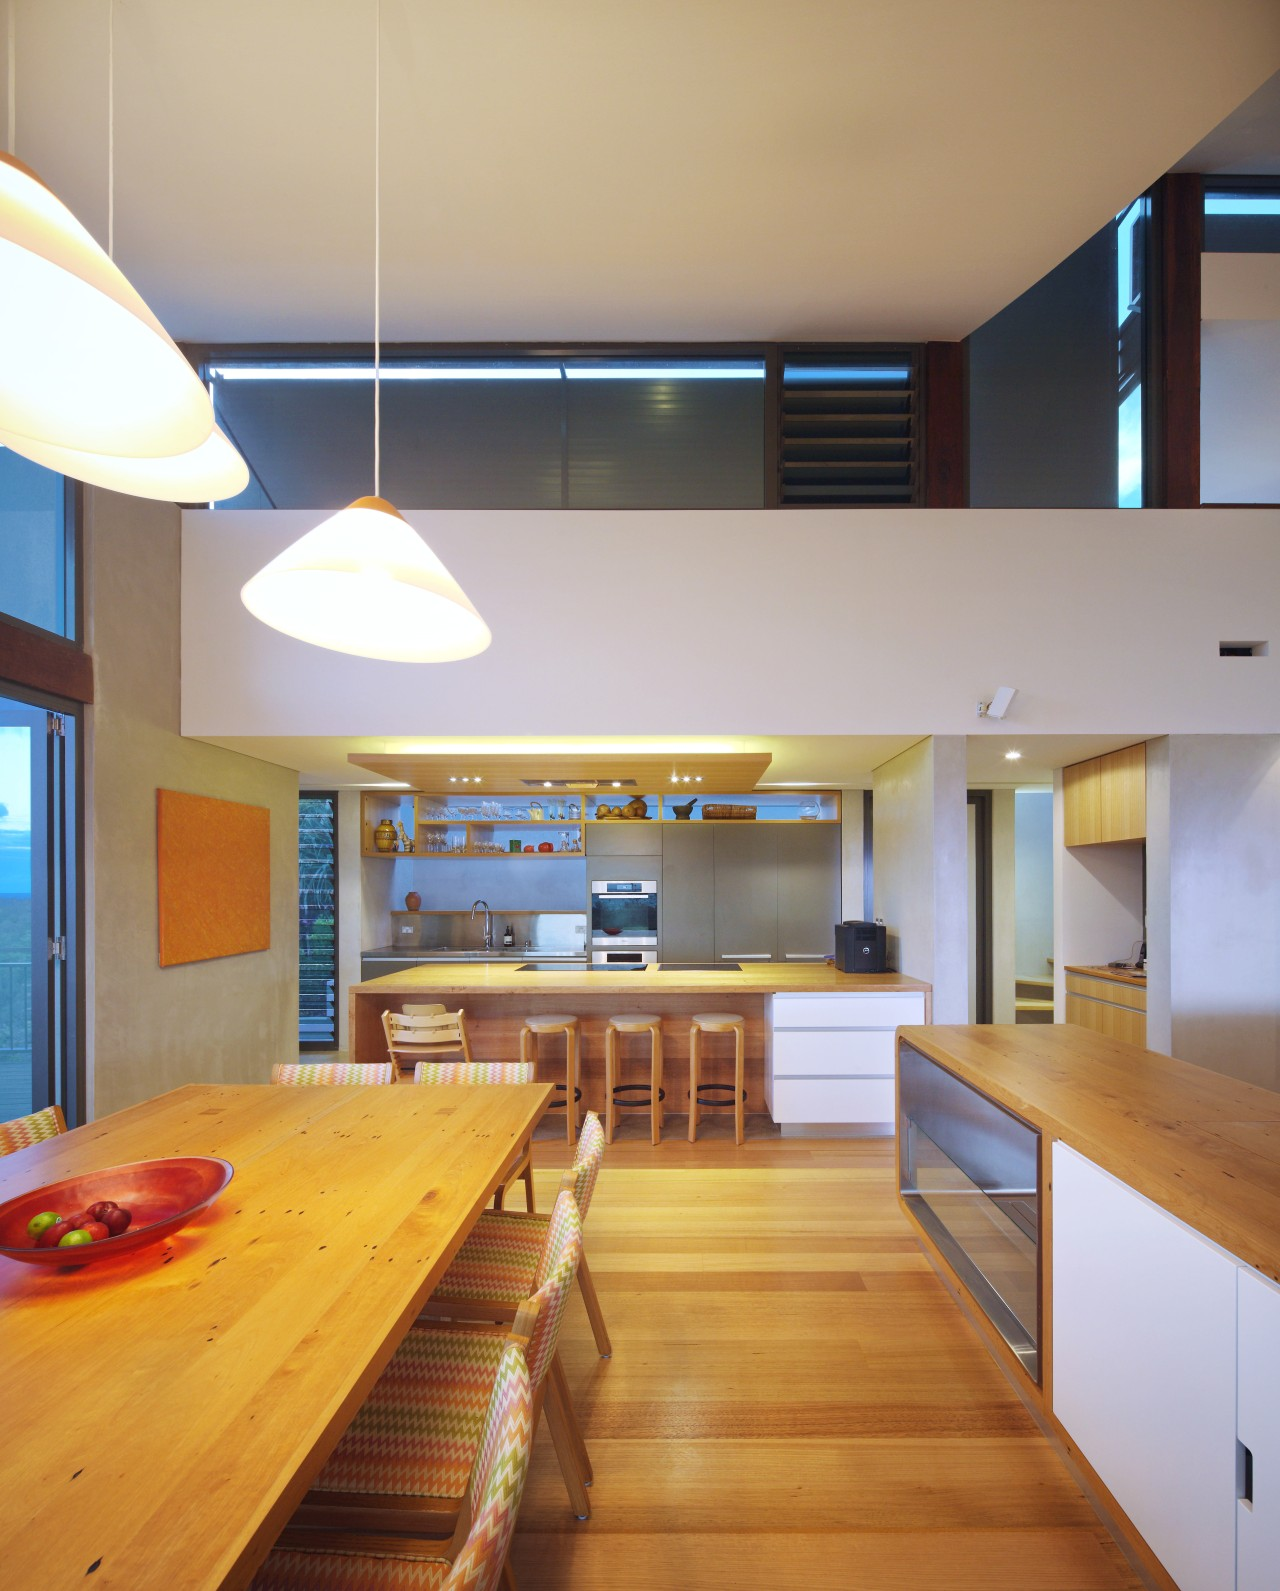 There are glazed walls behind the display shelving architecture, ceiling, countertop, daylighting, hardwood, house, interior design, kitchen, room, wood, gray, orange